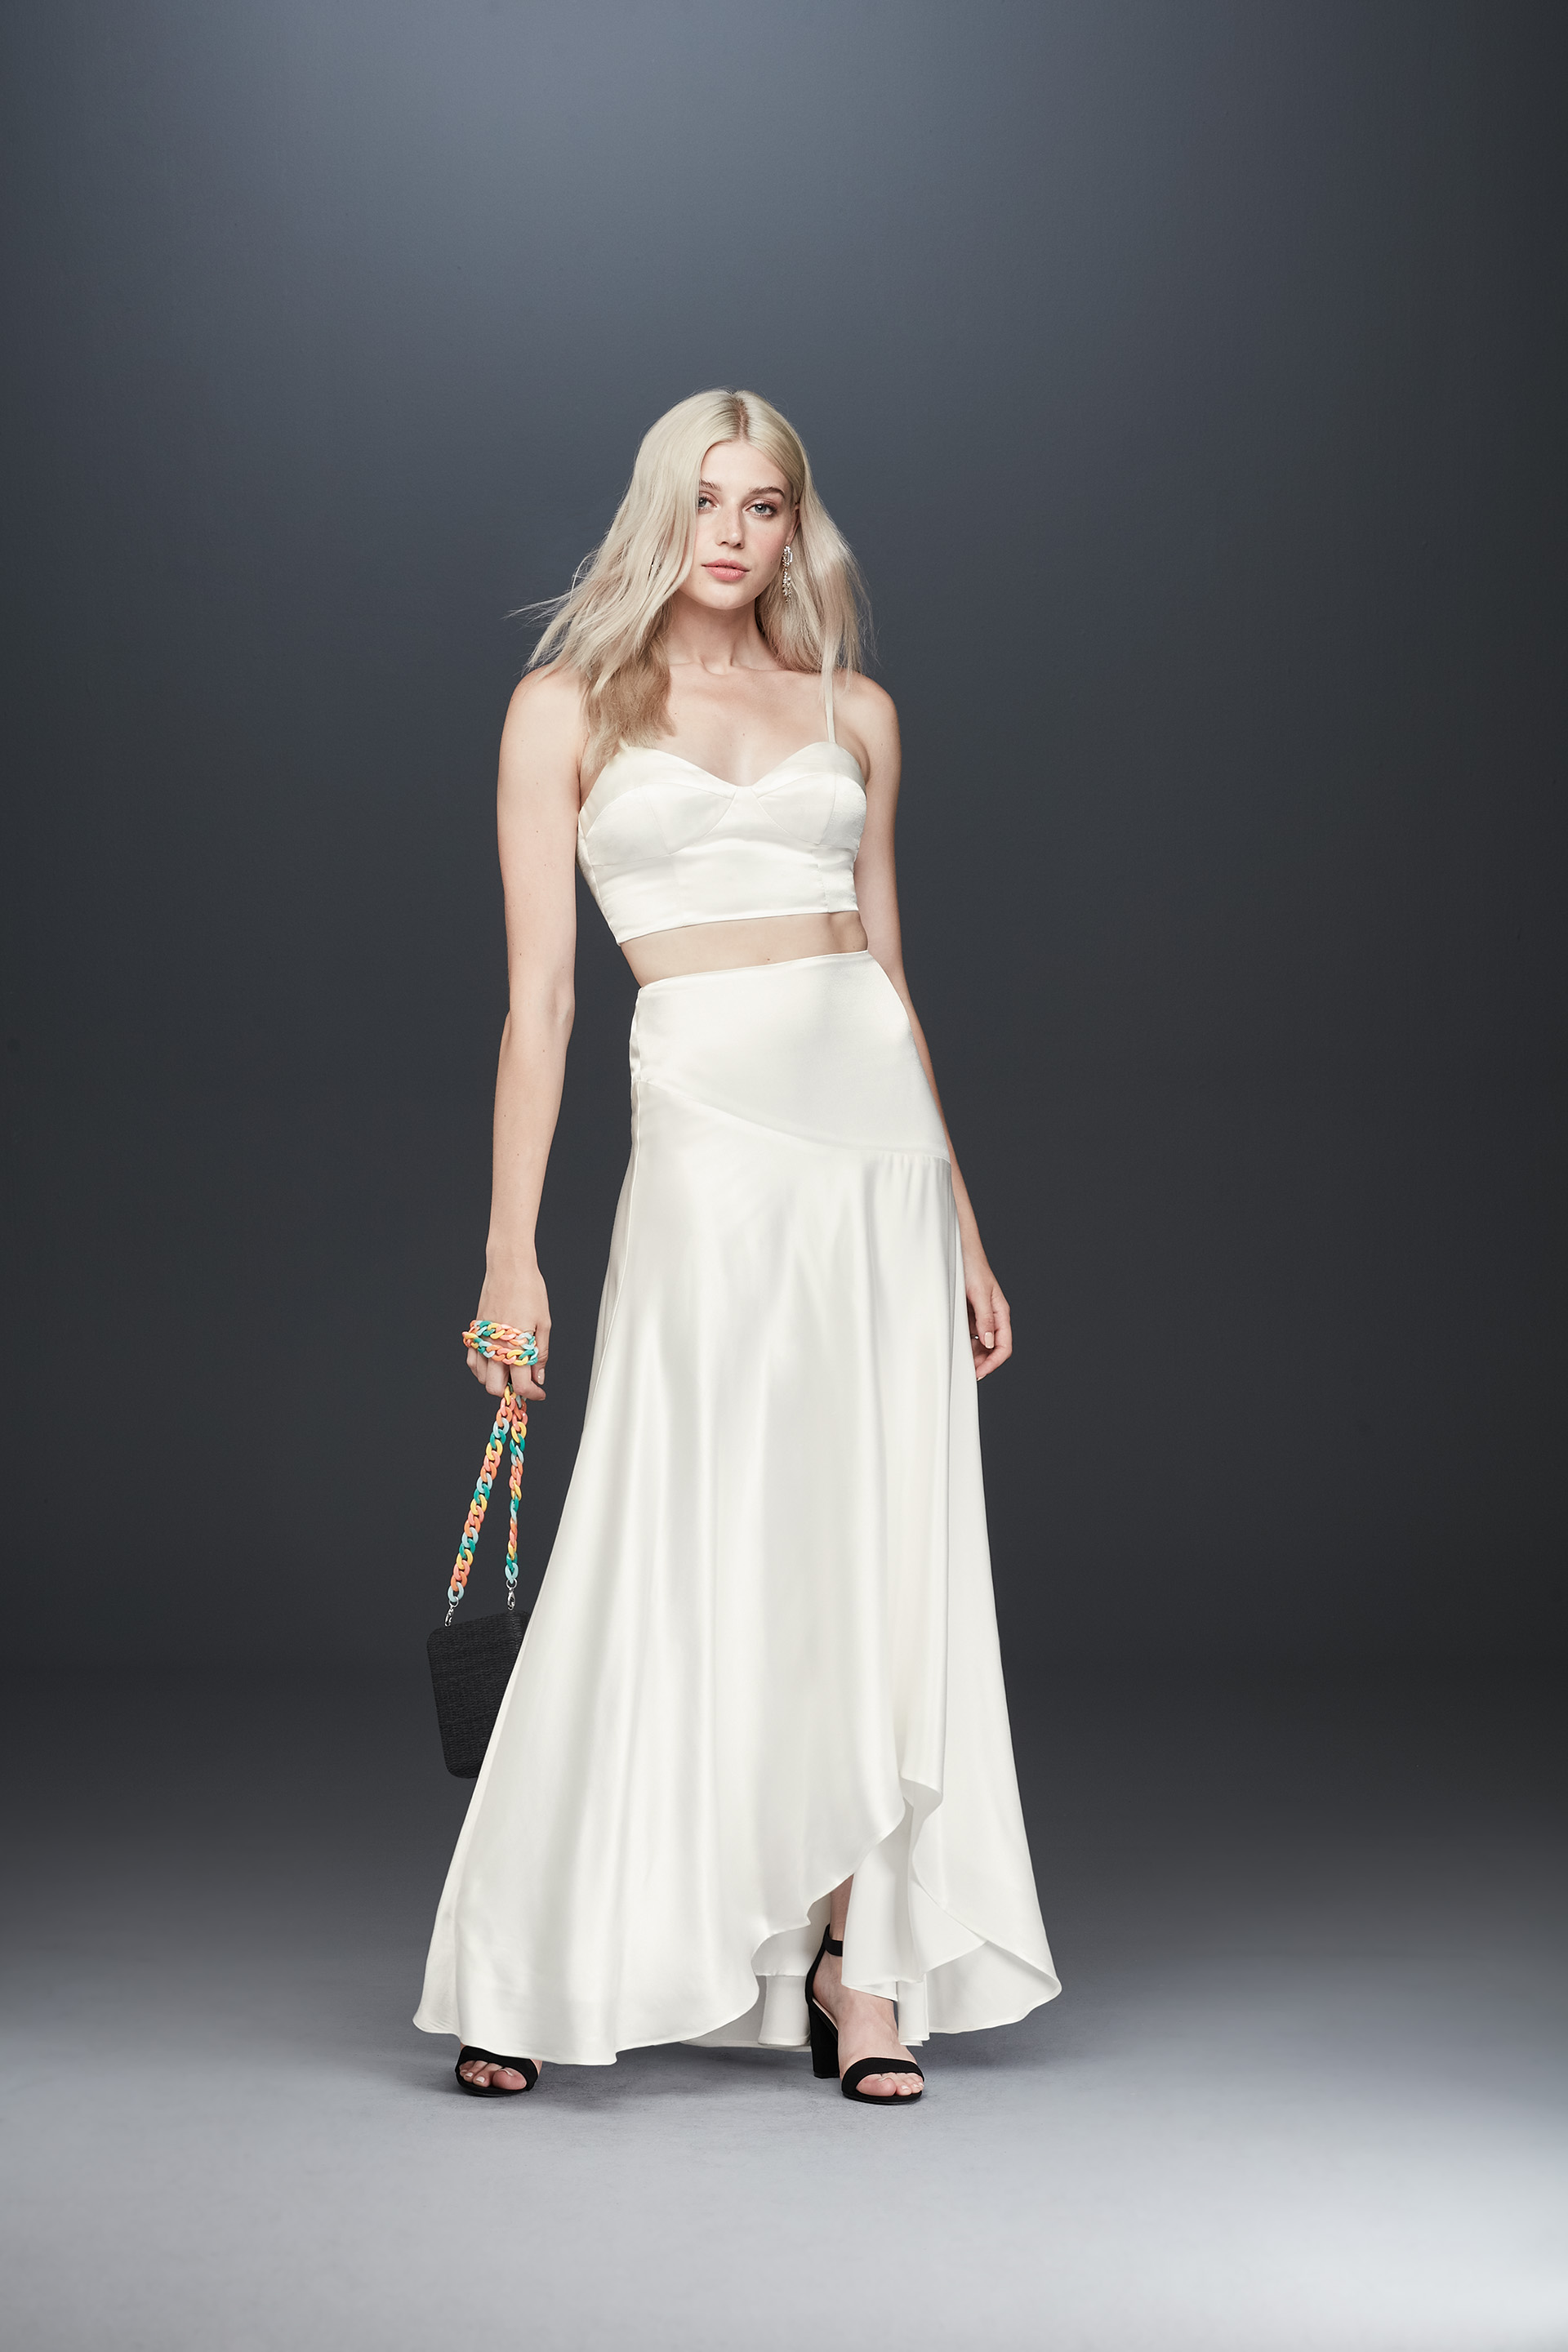 Bride in spaghetti strap satin bridal two piece dress from Fame & Partners x David's Bridal collection